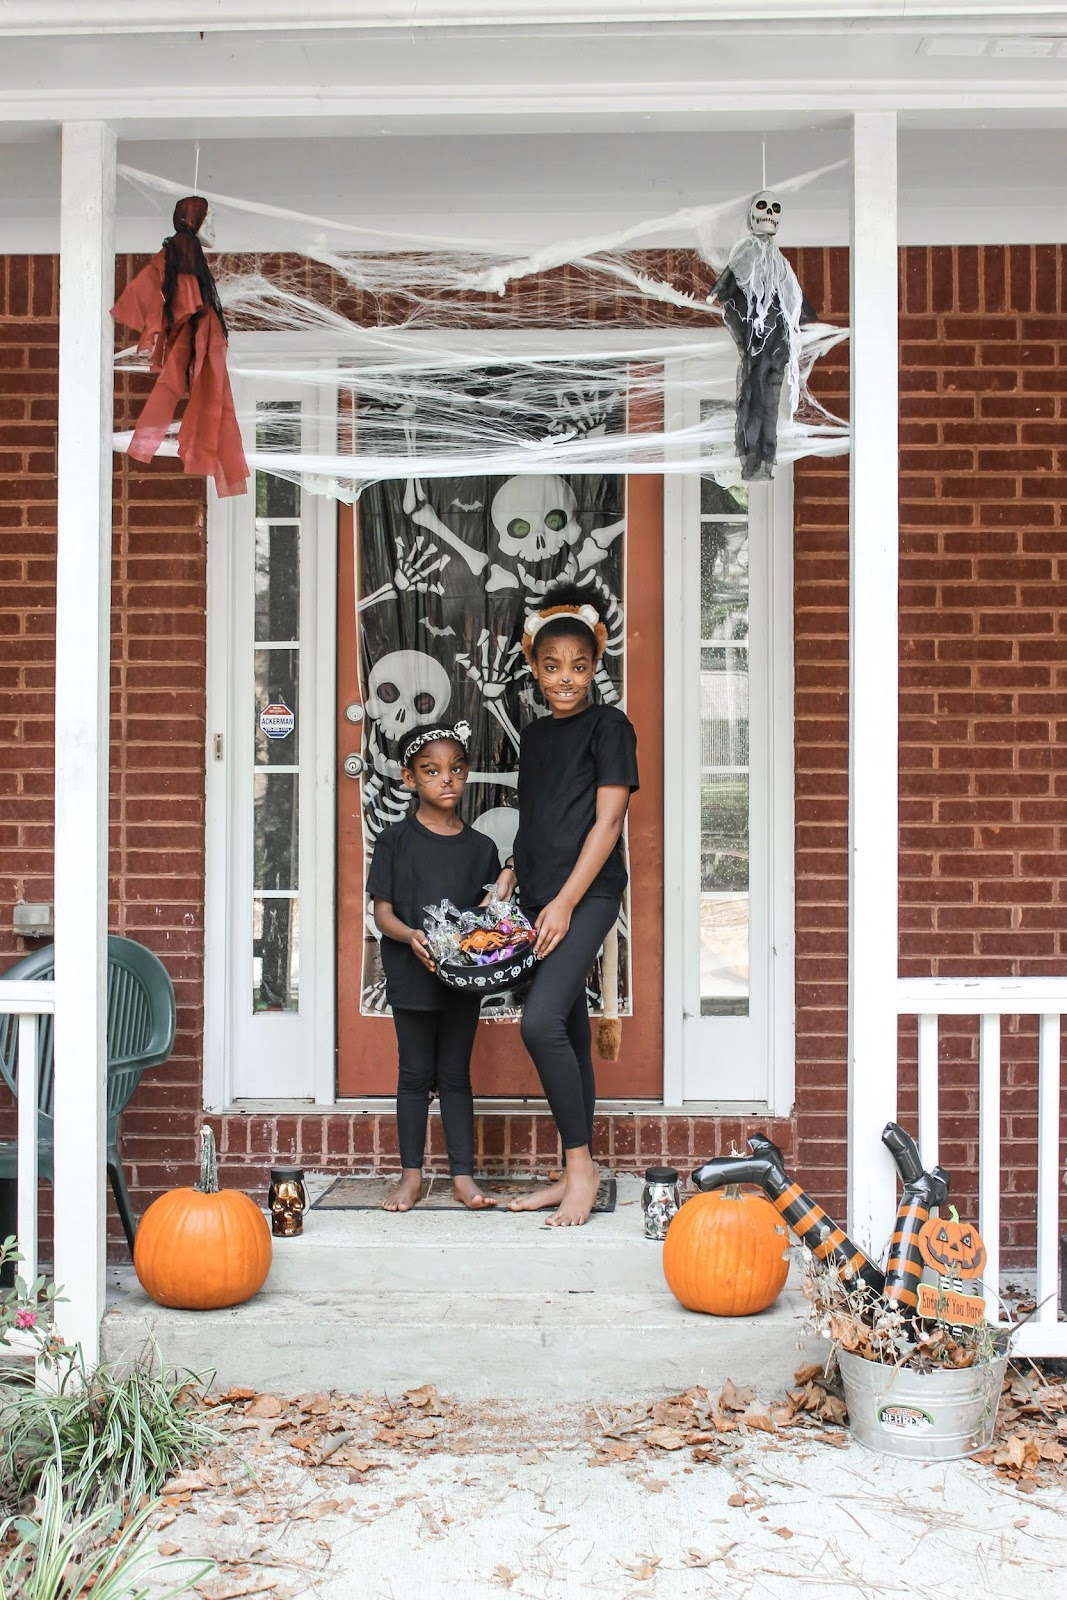 On a scale of 1-10, how ready for Halloween are you? Check out how I got everything together for a Halloween party without breaking the bank with decor from Dollar General.